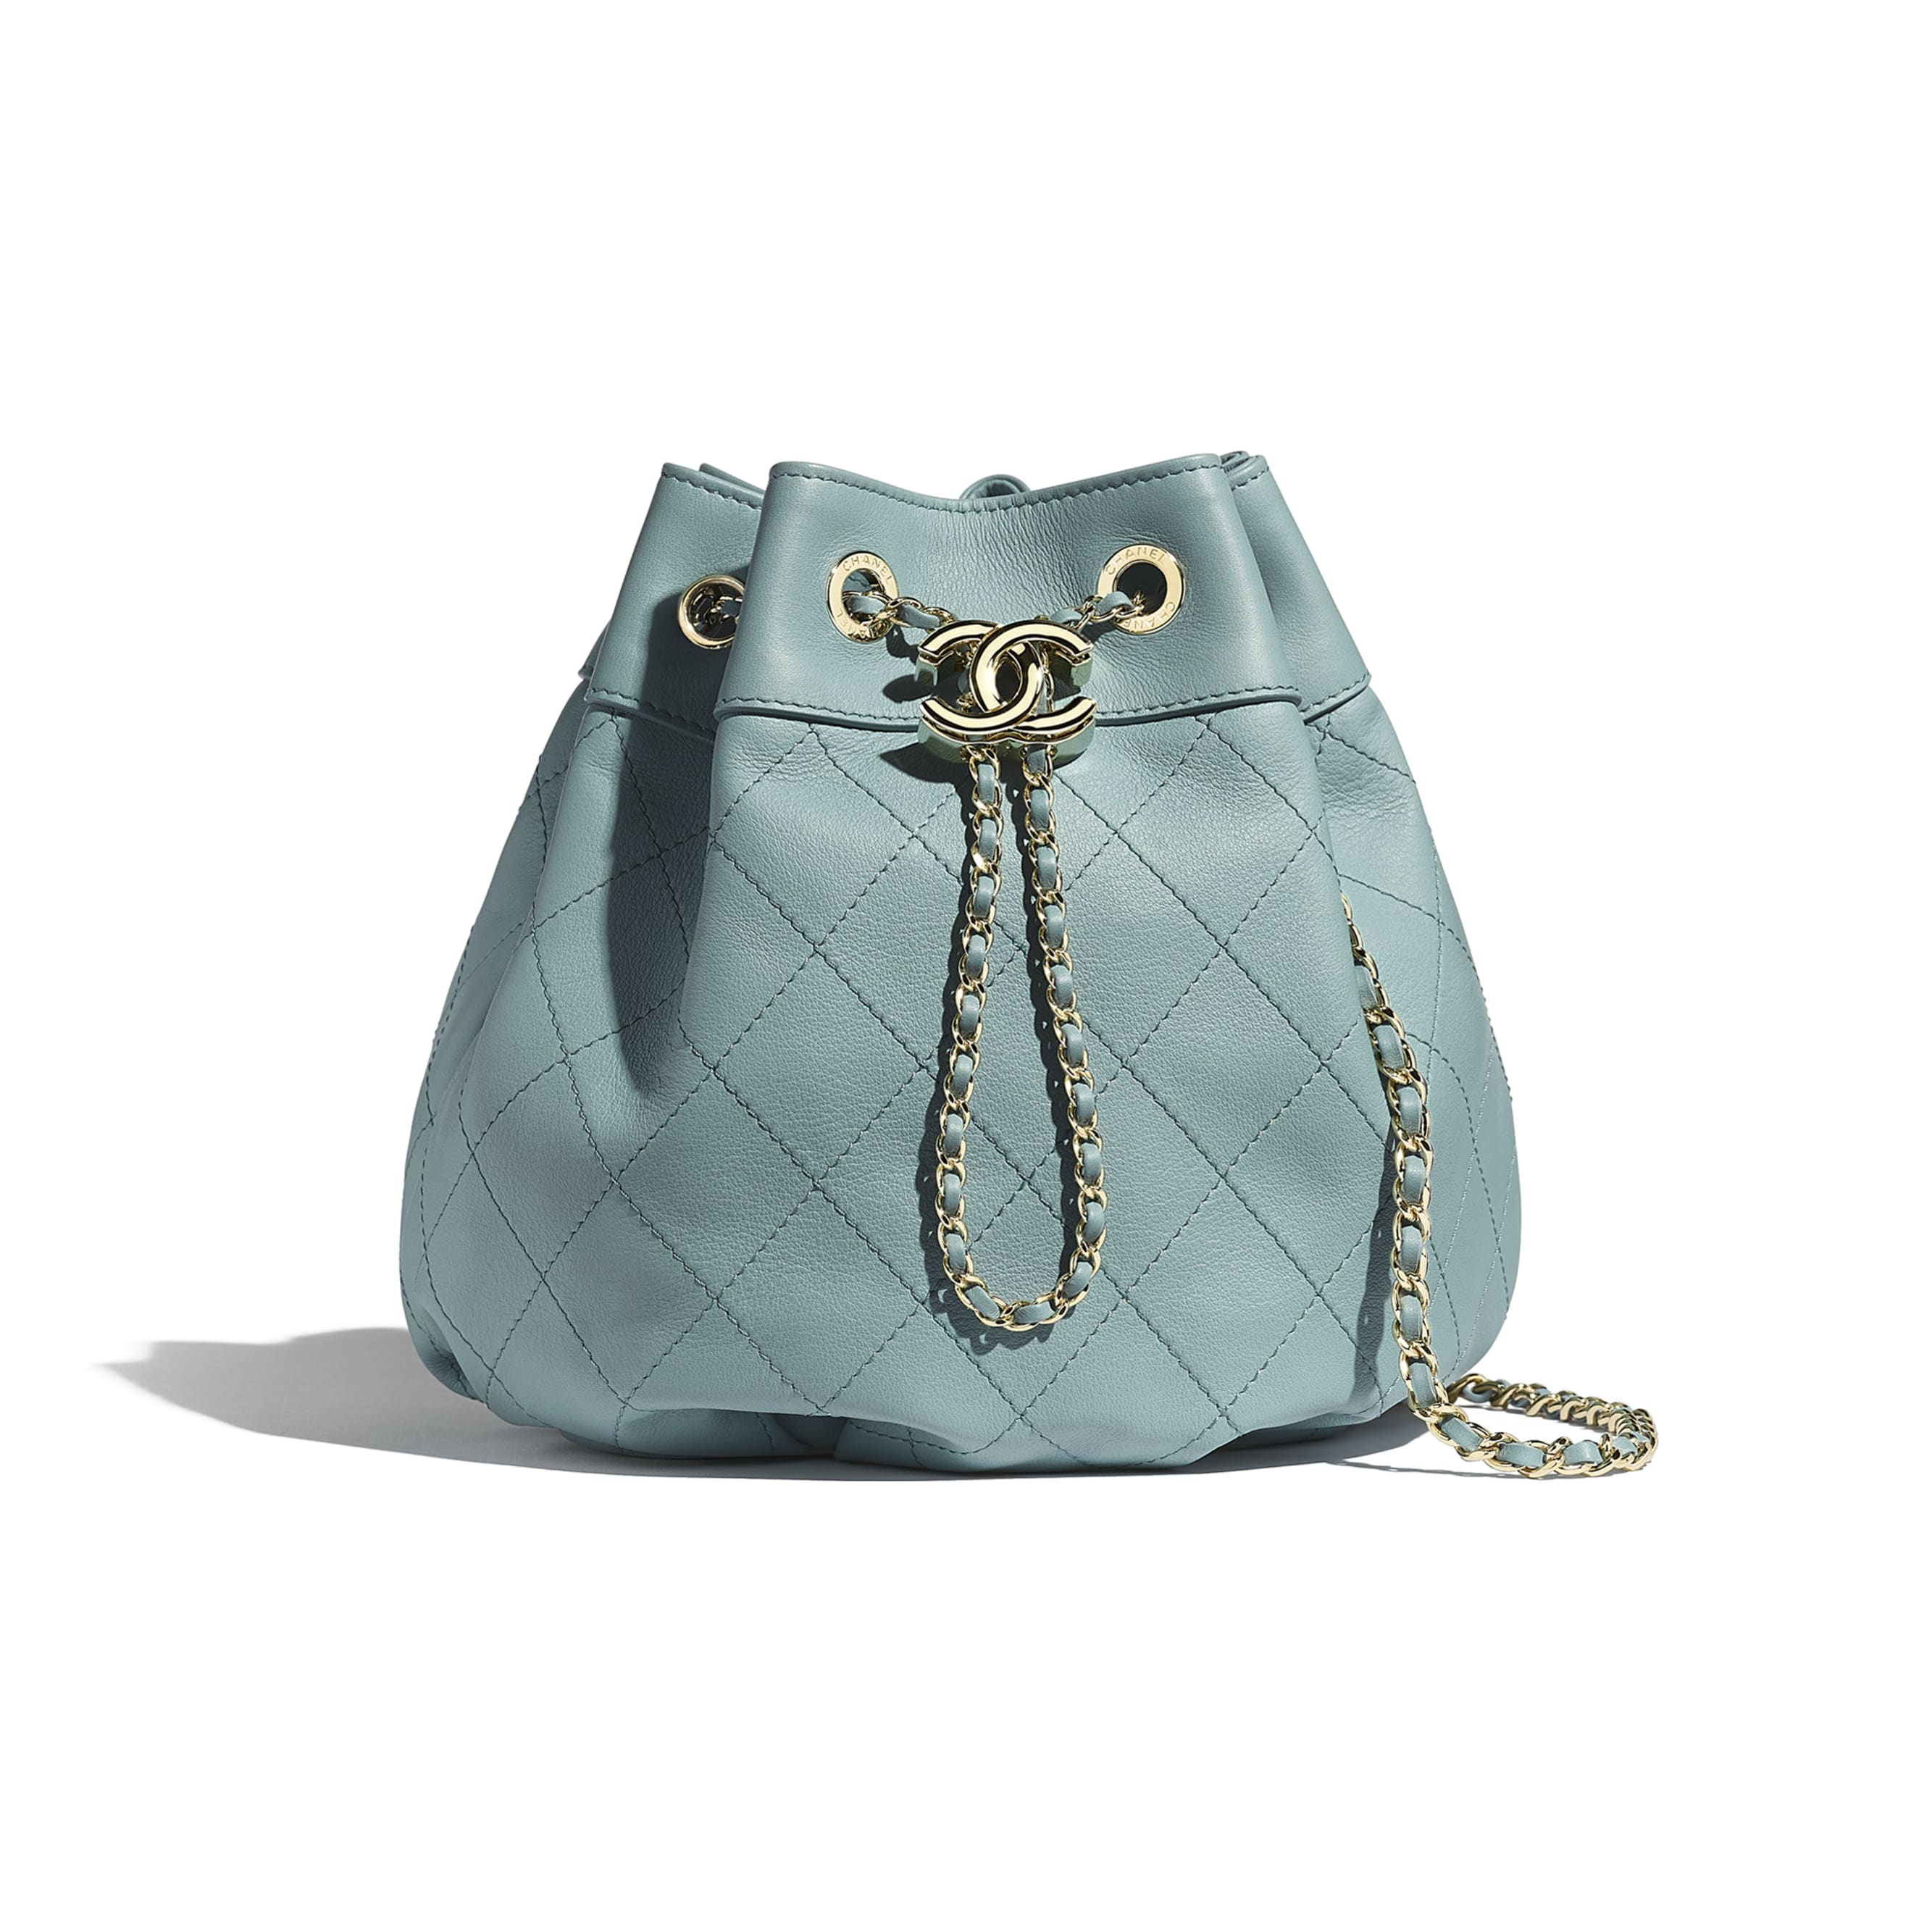 Drawstring Bag - Blue - Calfskin & Gold-Tone Metal - CHANEL - Default view - see standard sized version